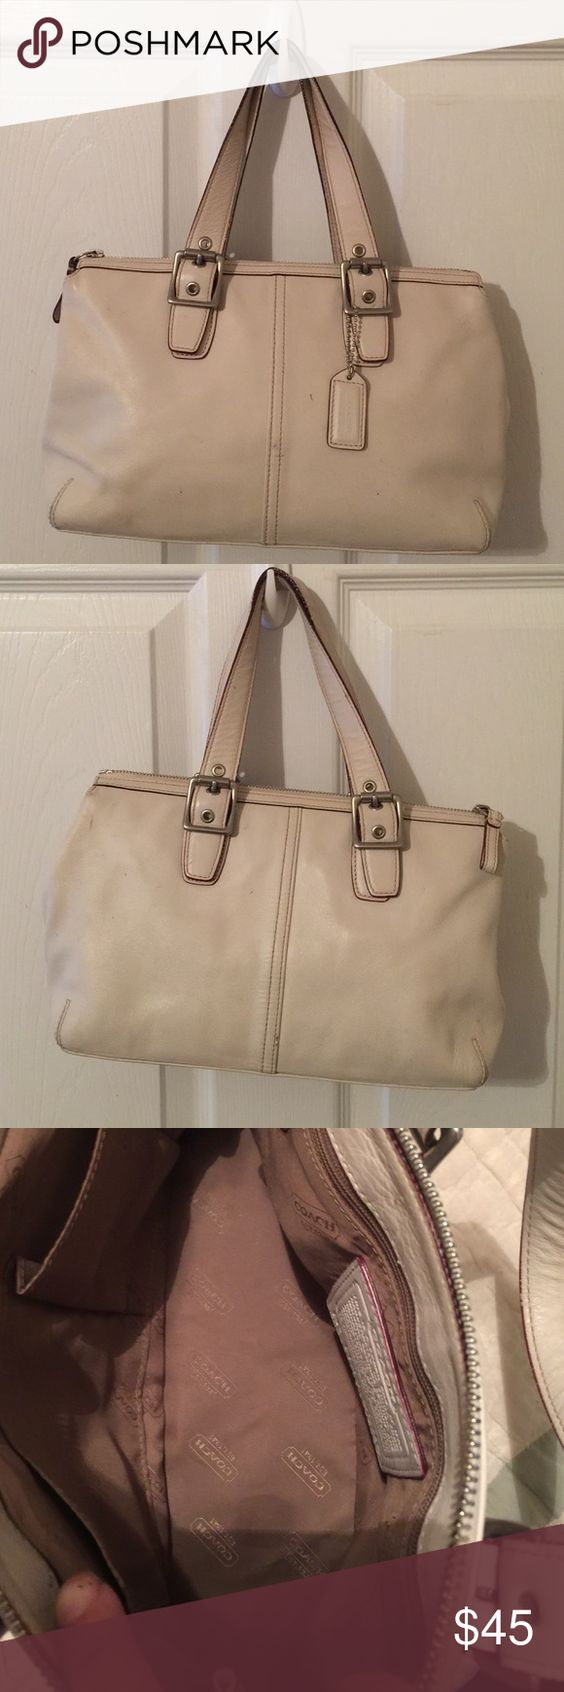 Coach Legacy Cream White Leather Handbag Very good preowned condition. Comes with dust 💼 bag Coach Bags Satchels